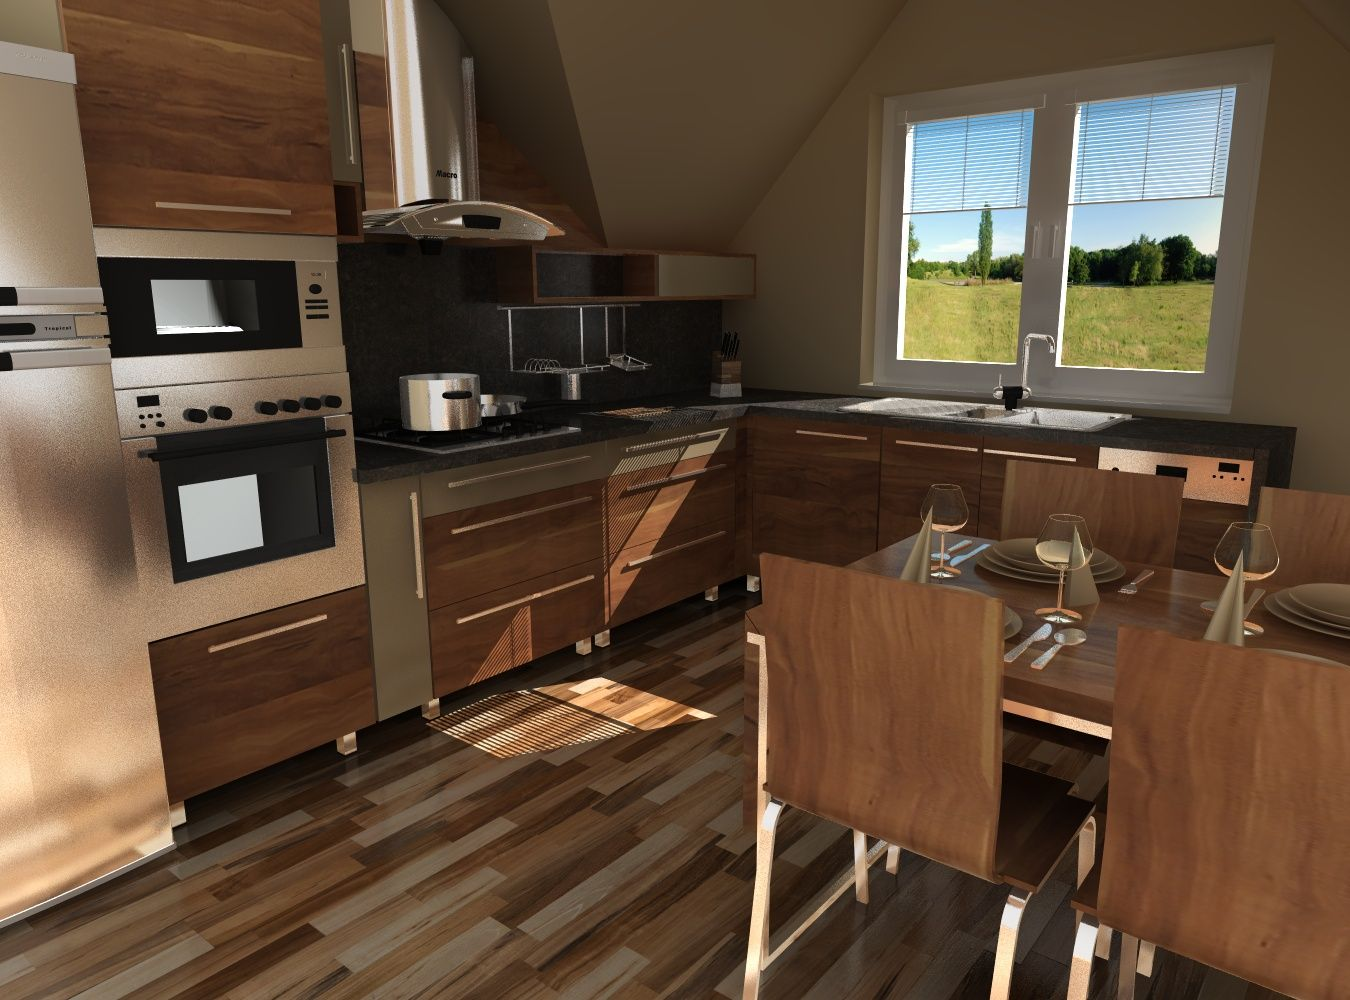 Kitchen Model/rendering Created In TurboCAD Professional CAD Software